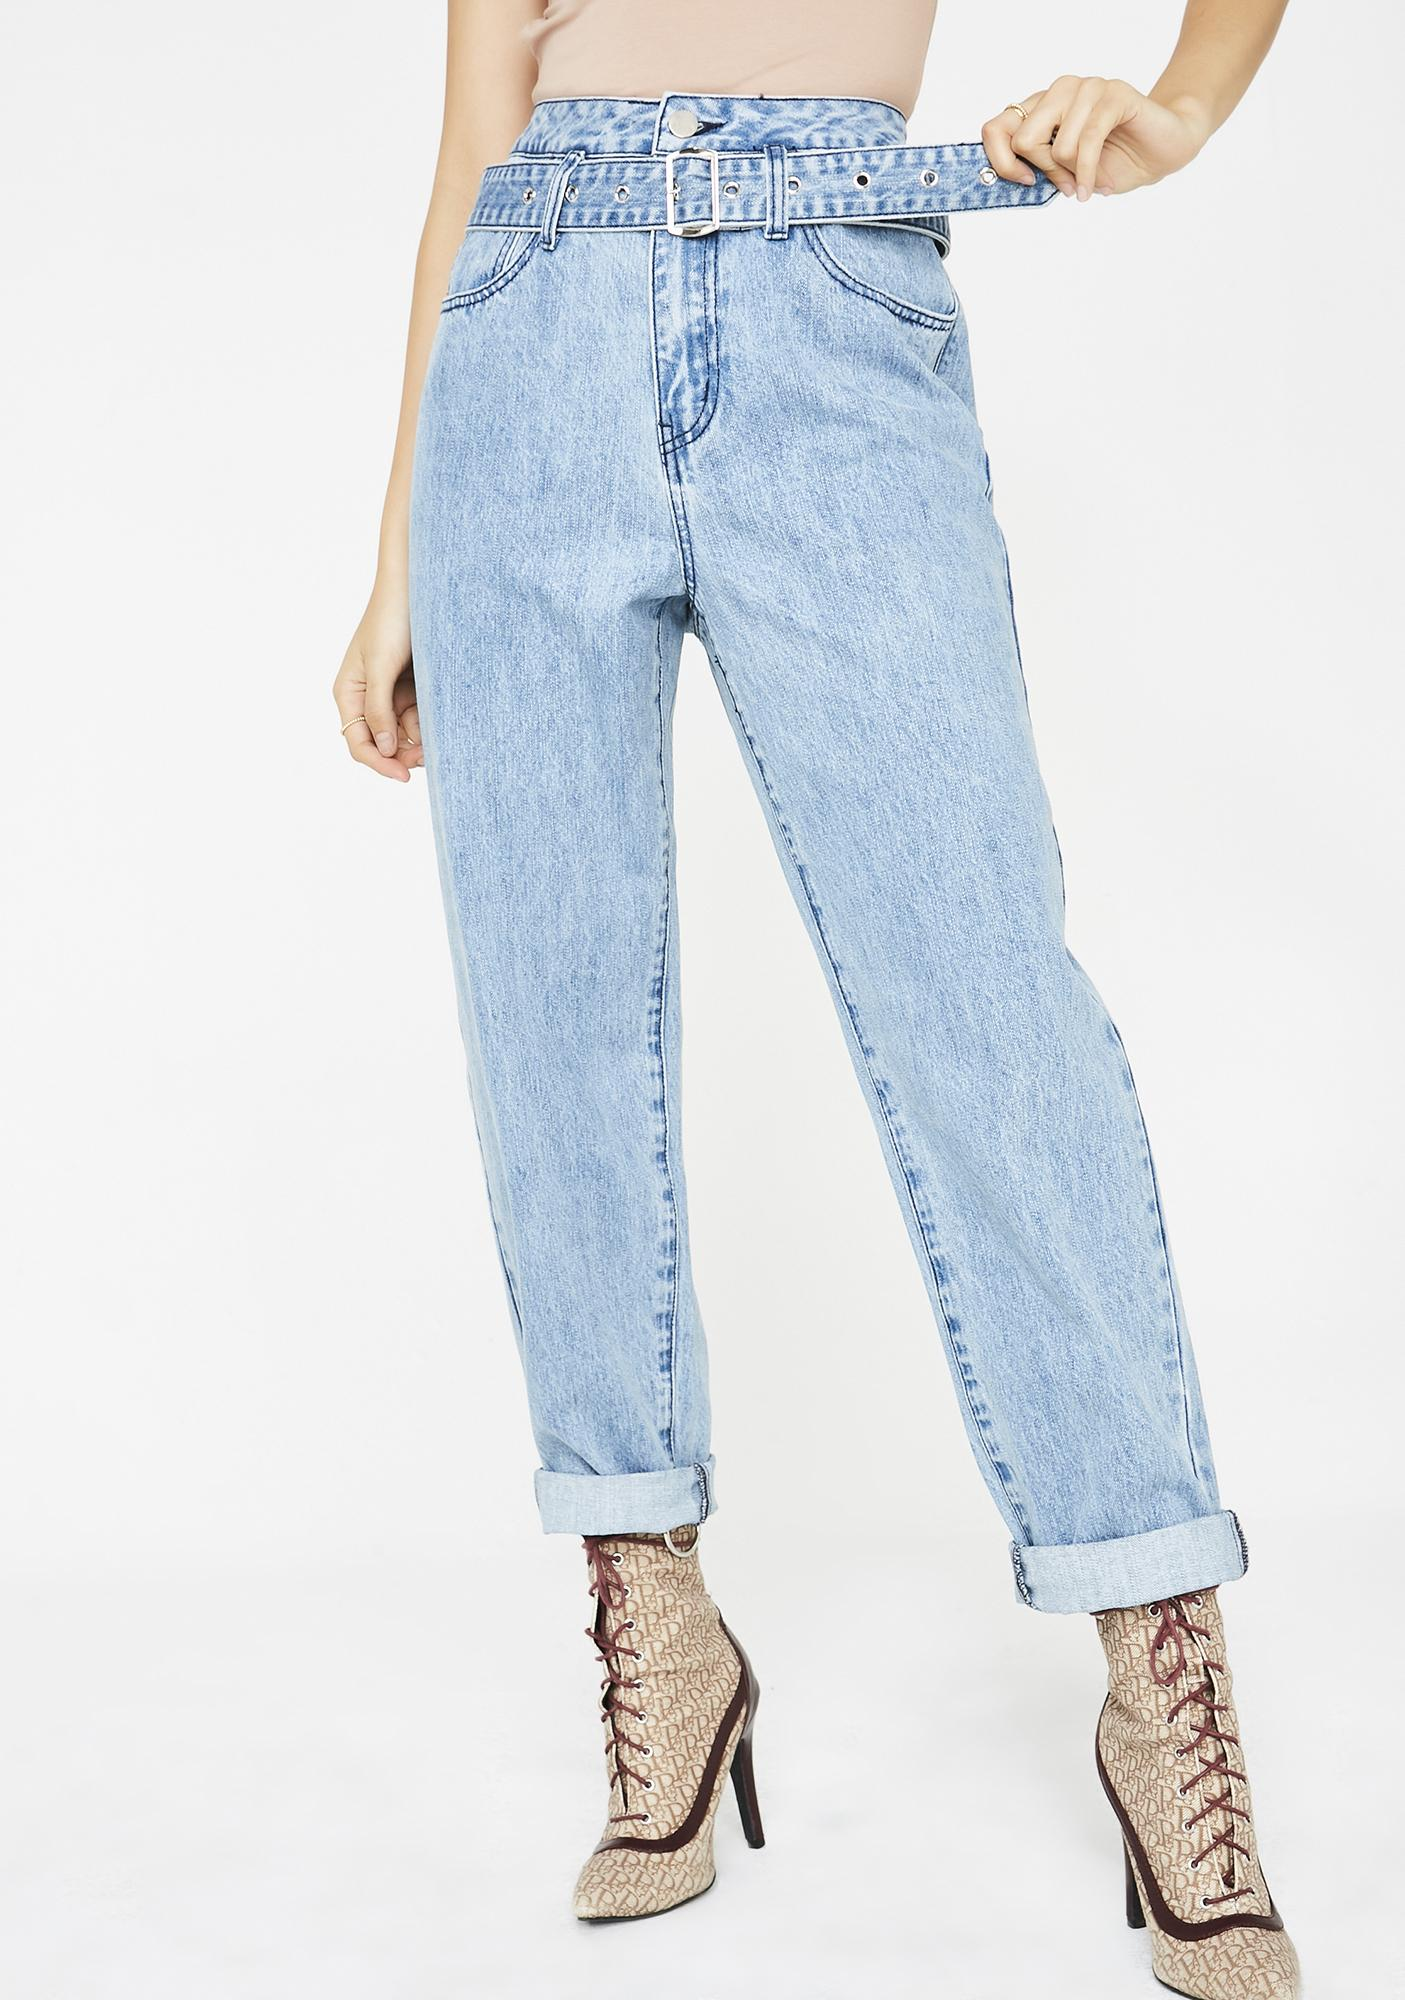 Winter Muse Louis Jeans